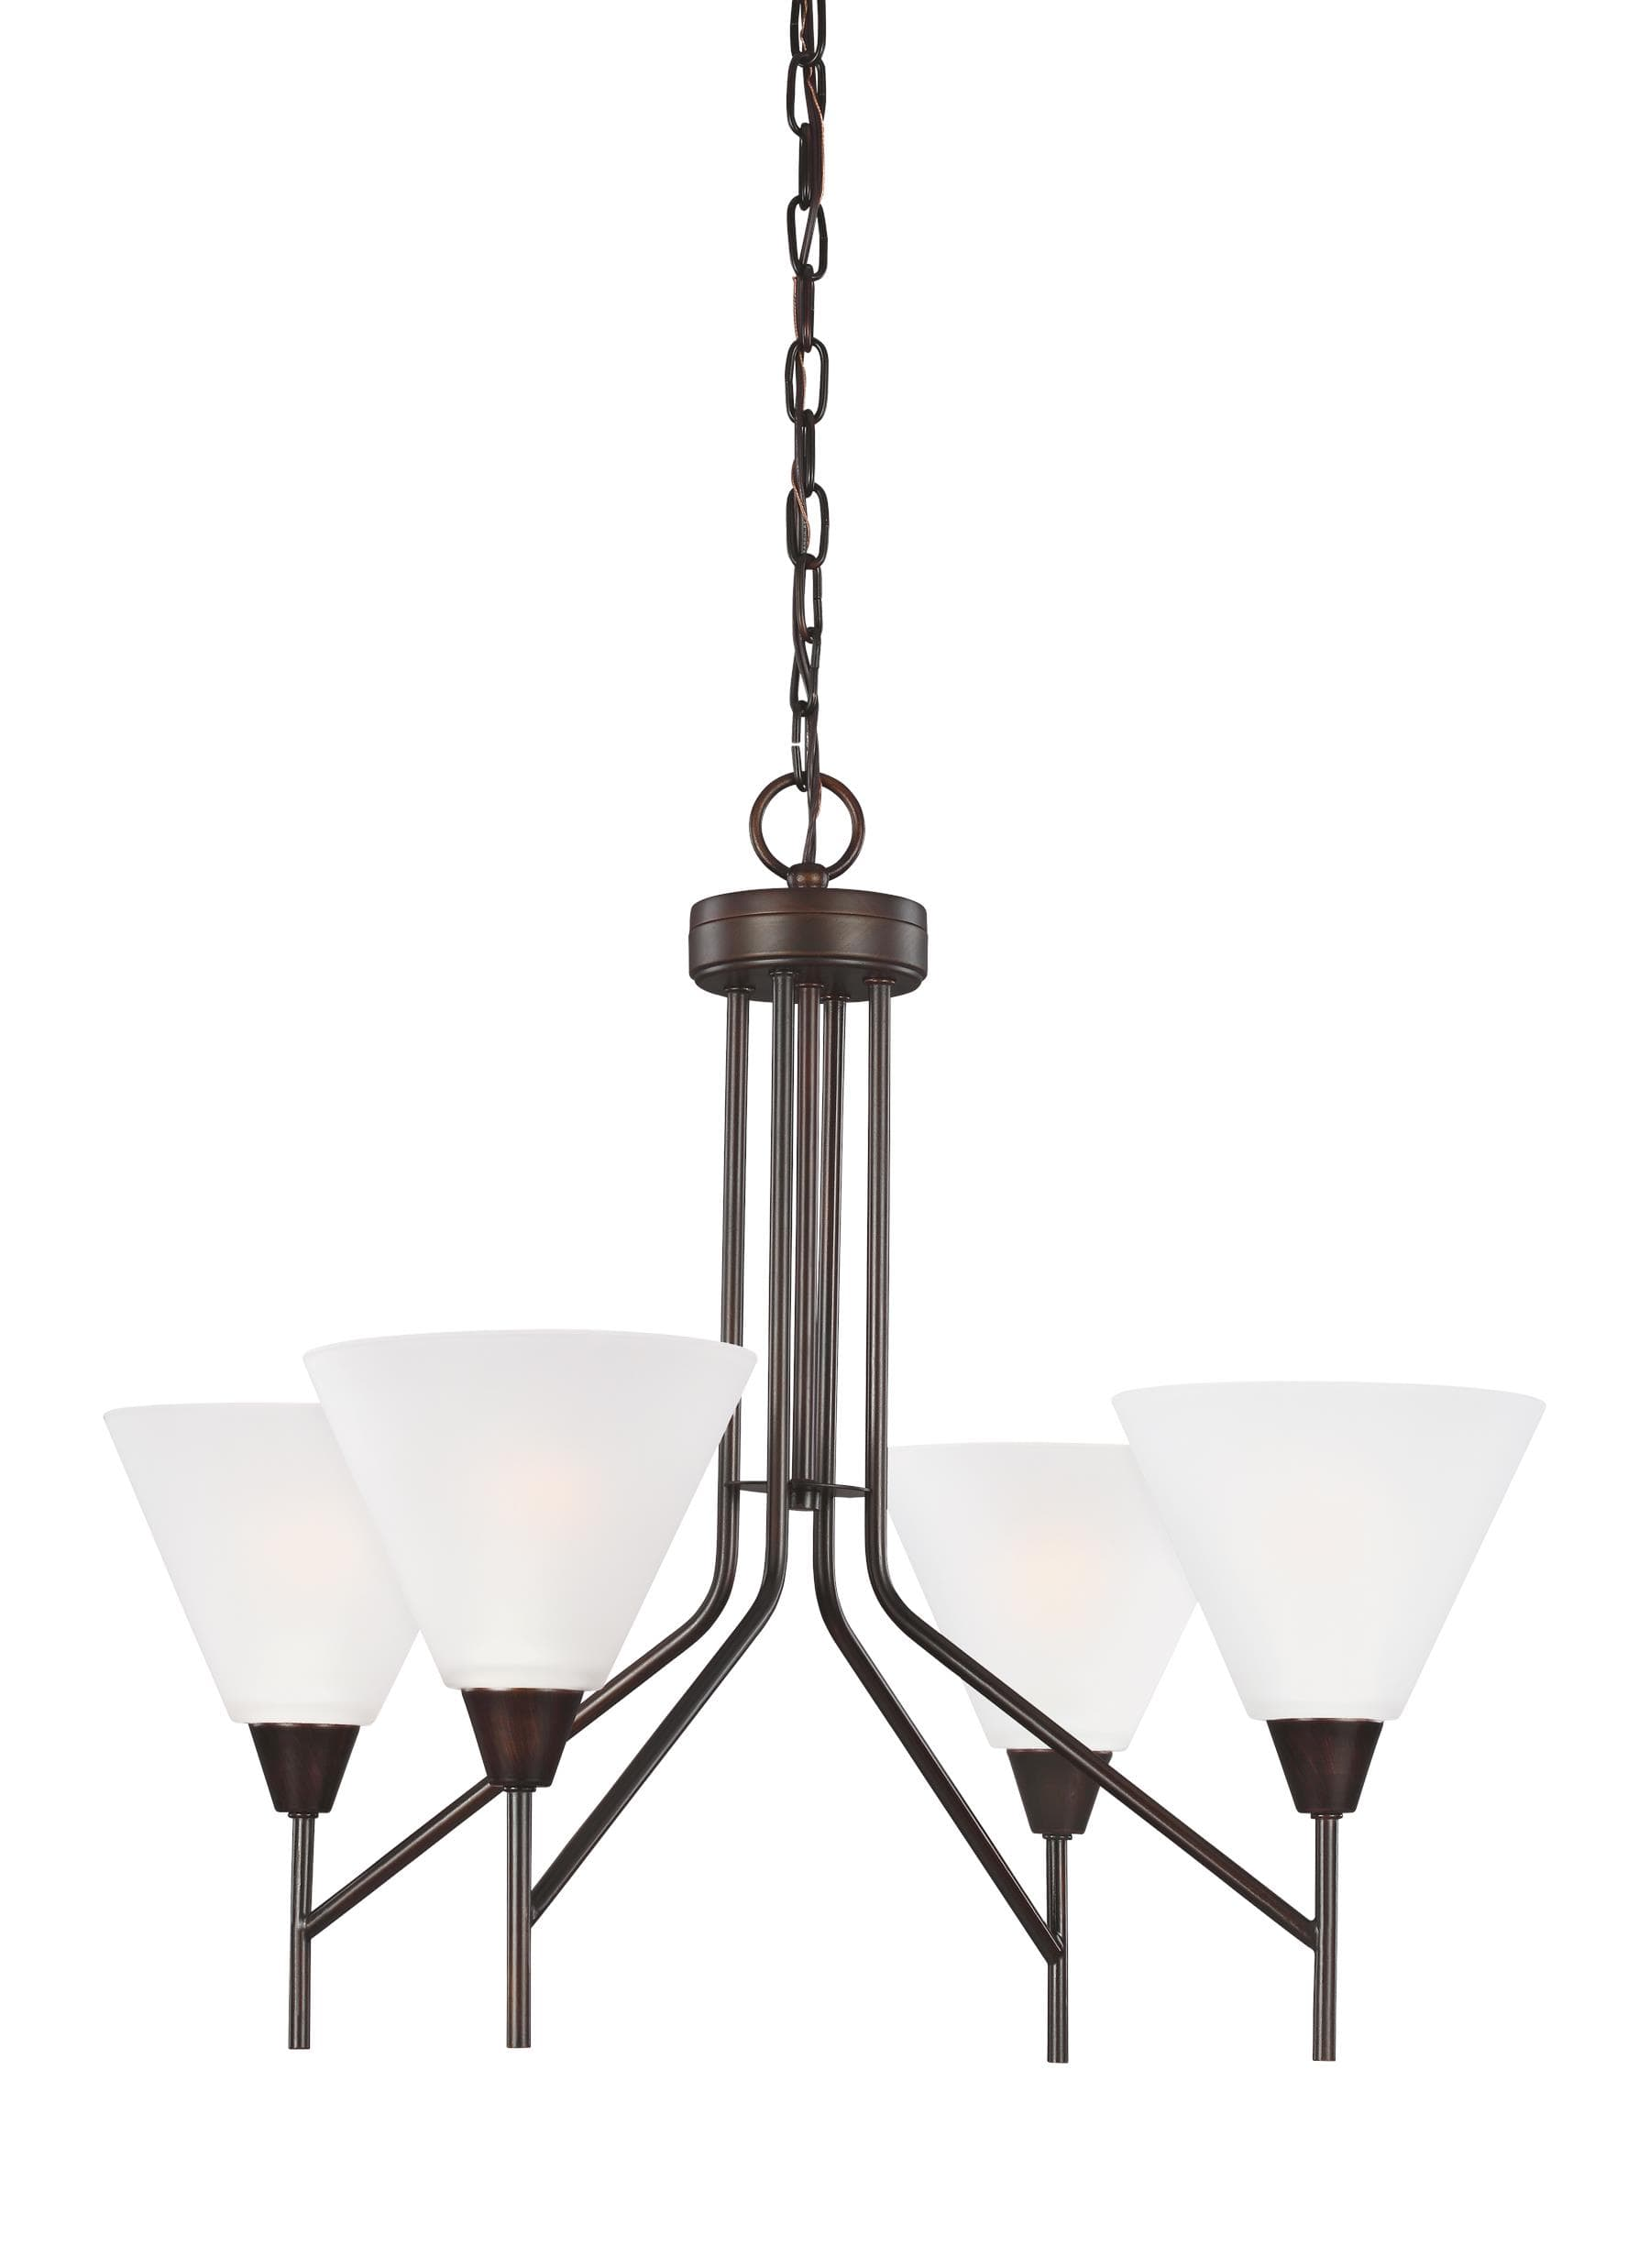 Home Depot Lighting Special Buys - Free Shipping or Ship to Store $59.99